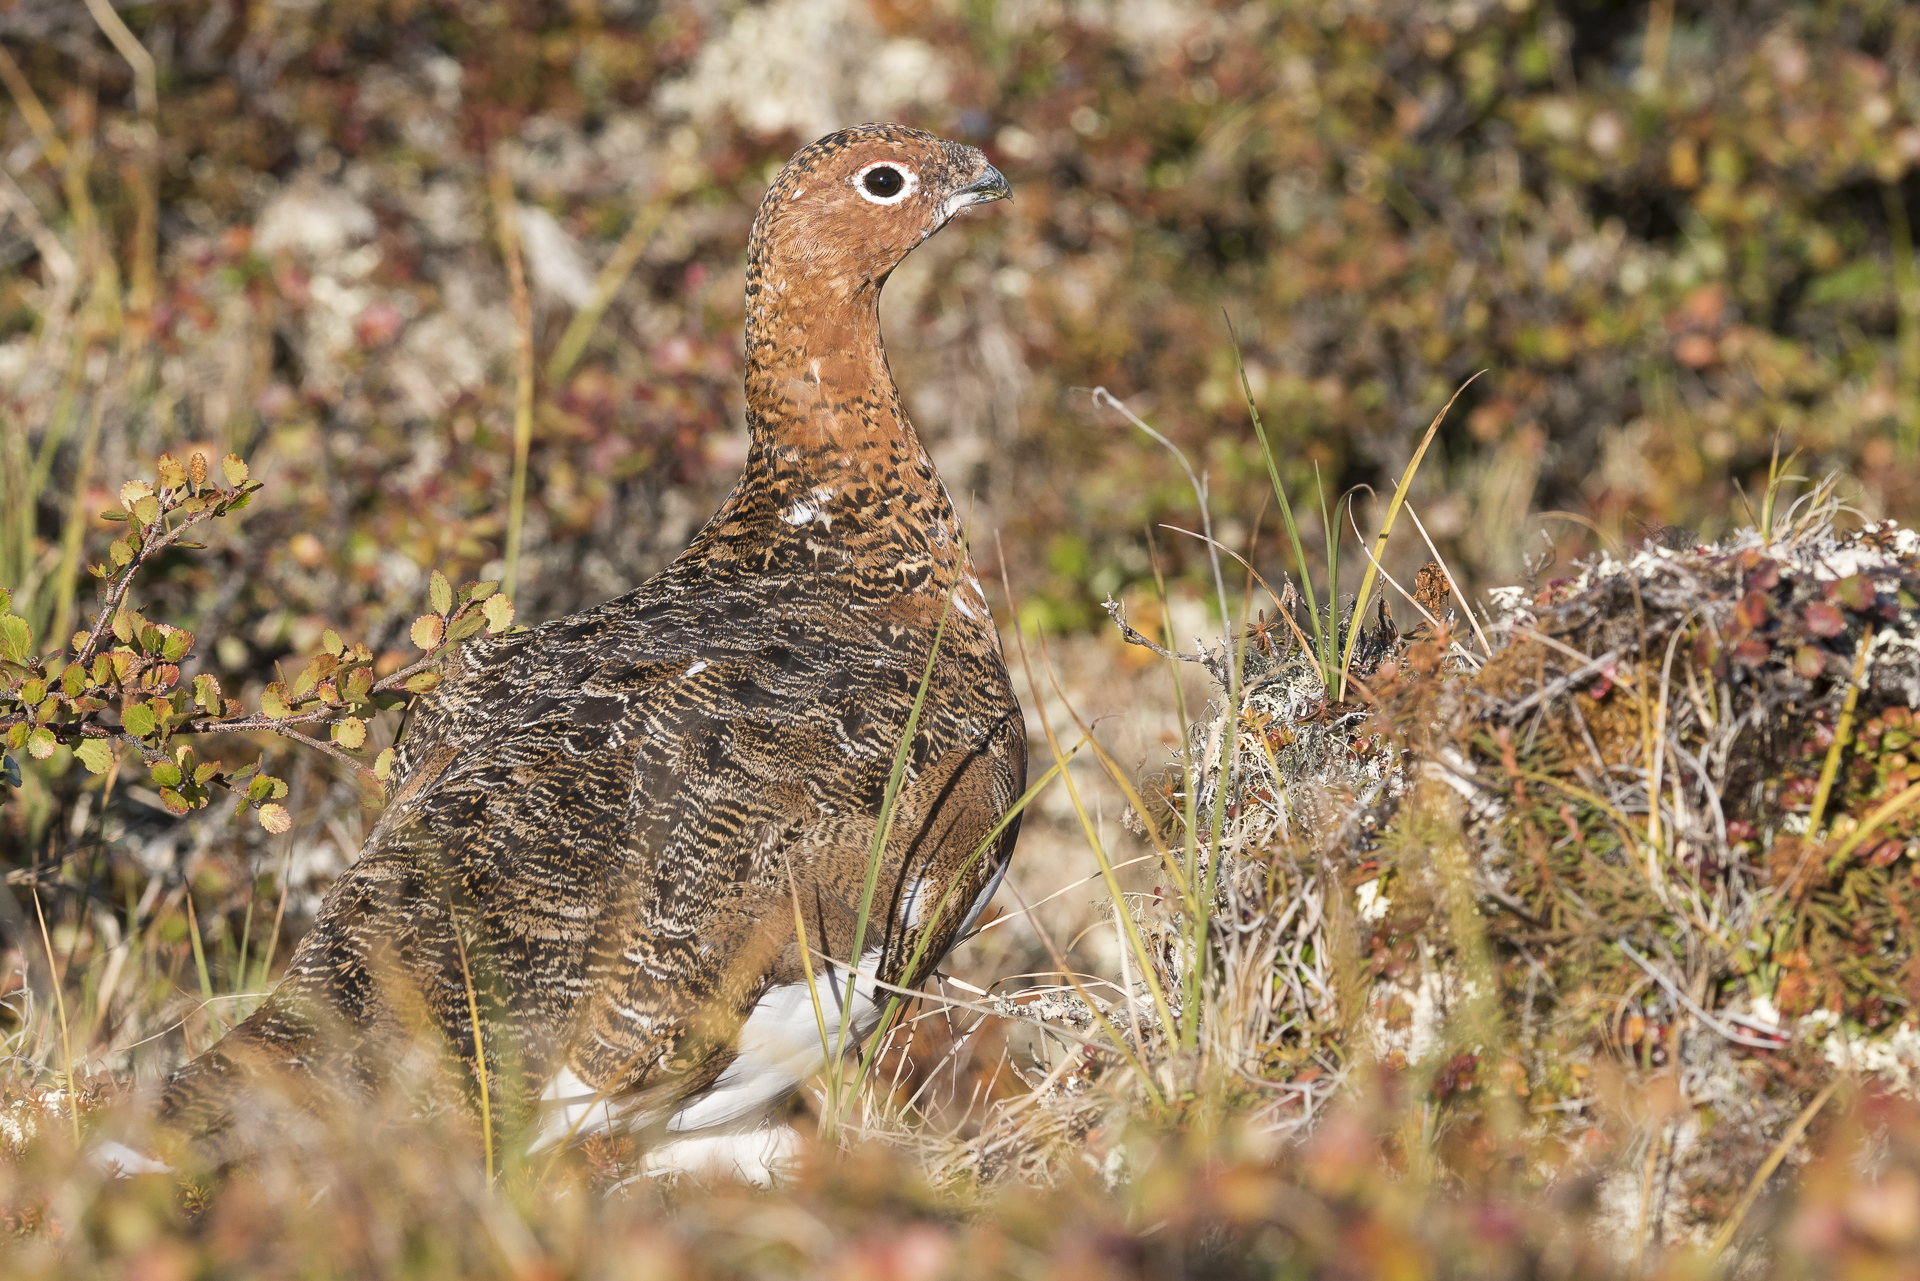 Willow ptarmigan displaying cryptic plumage